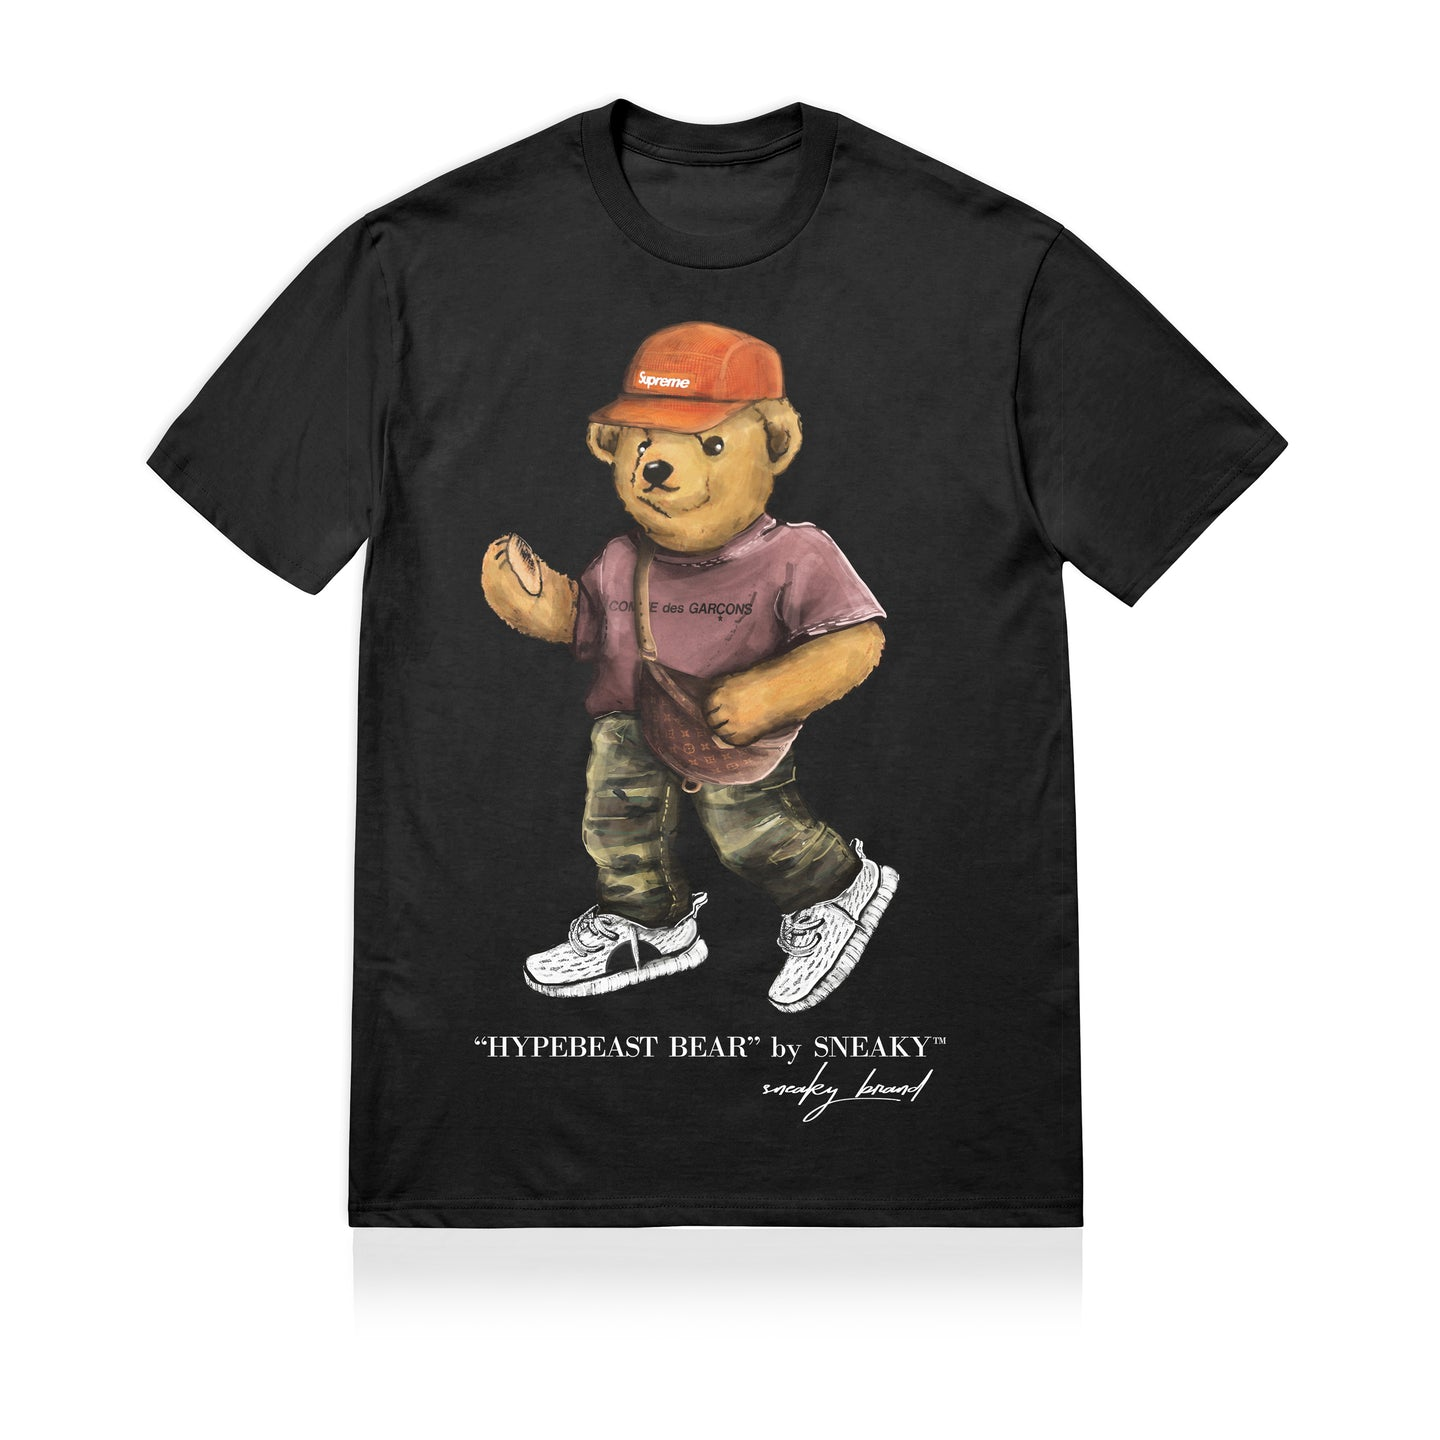 Sneaky Hypebeast Bear Unisex Adult T-shirt Black